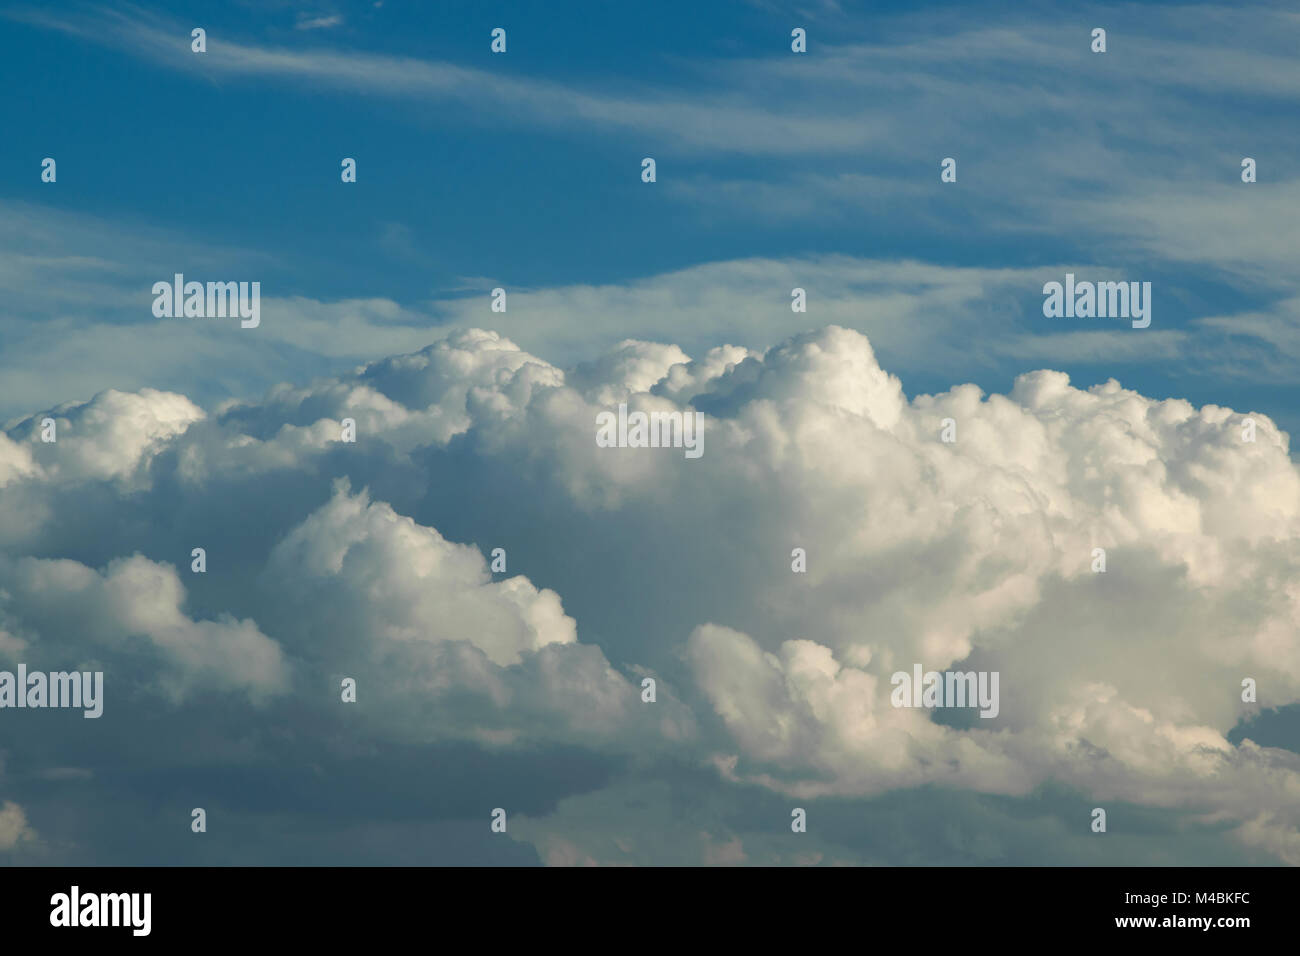 Natural background of fluffy clouds in the sky, space for text - Stock Image